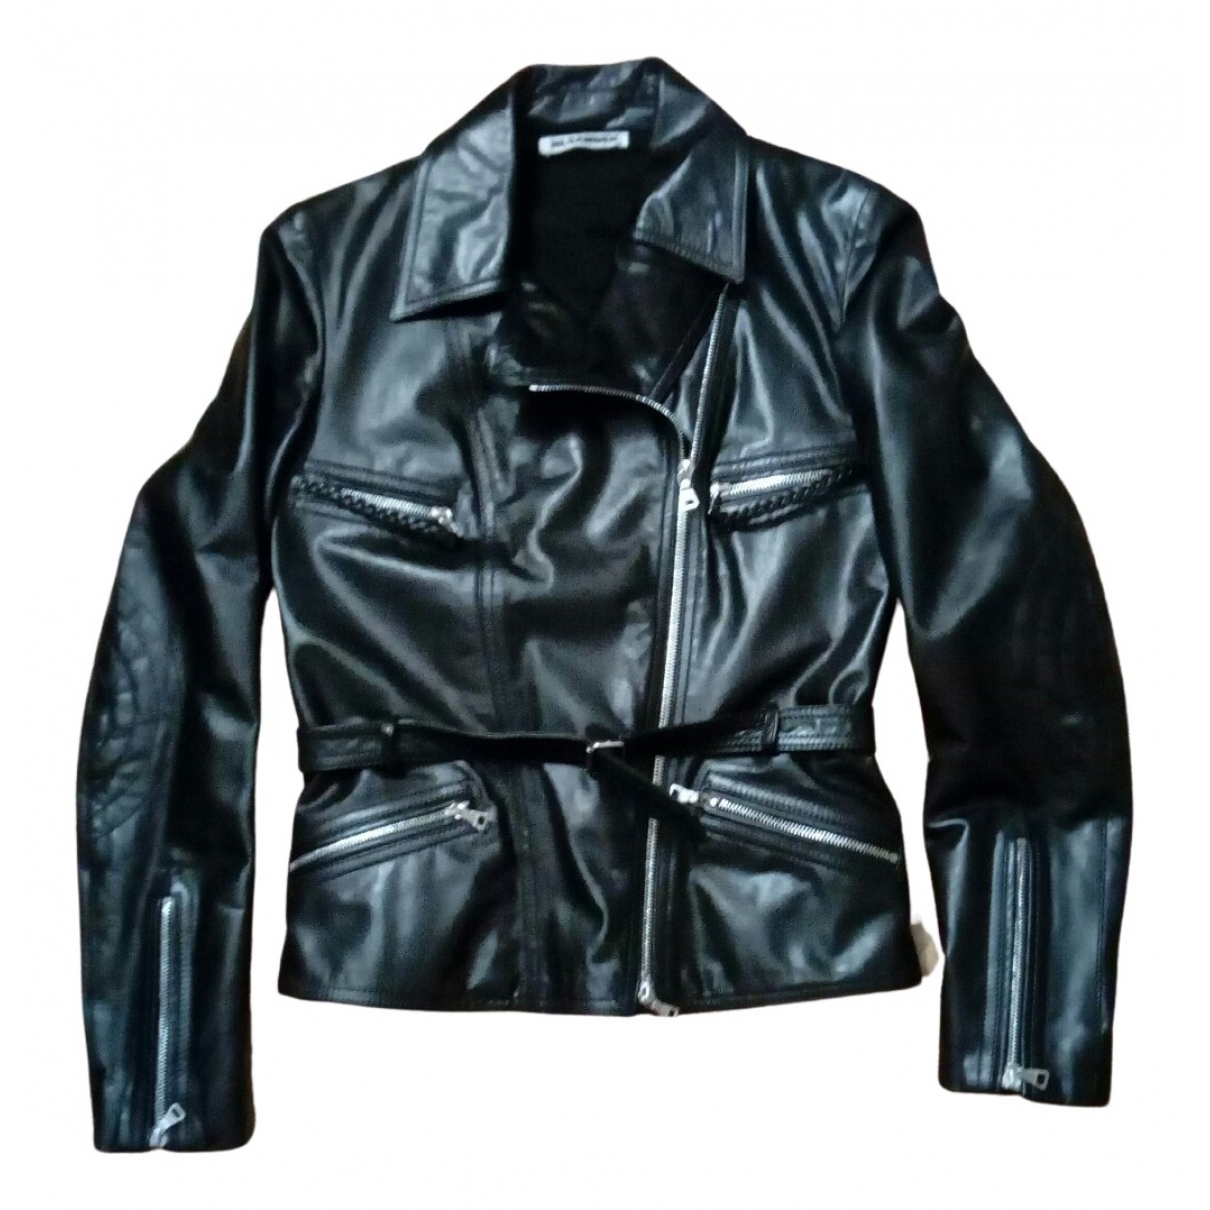 Jil Sander N Black Leather jacket for Women 36 FR